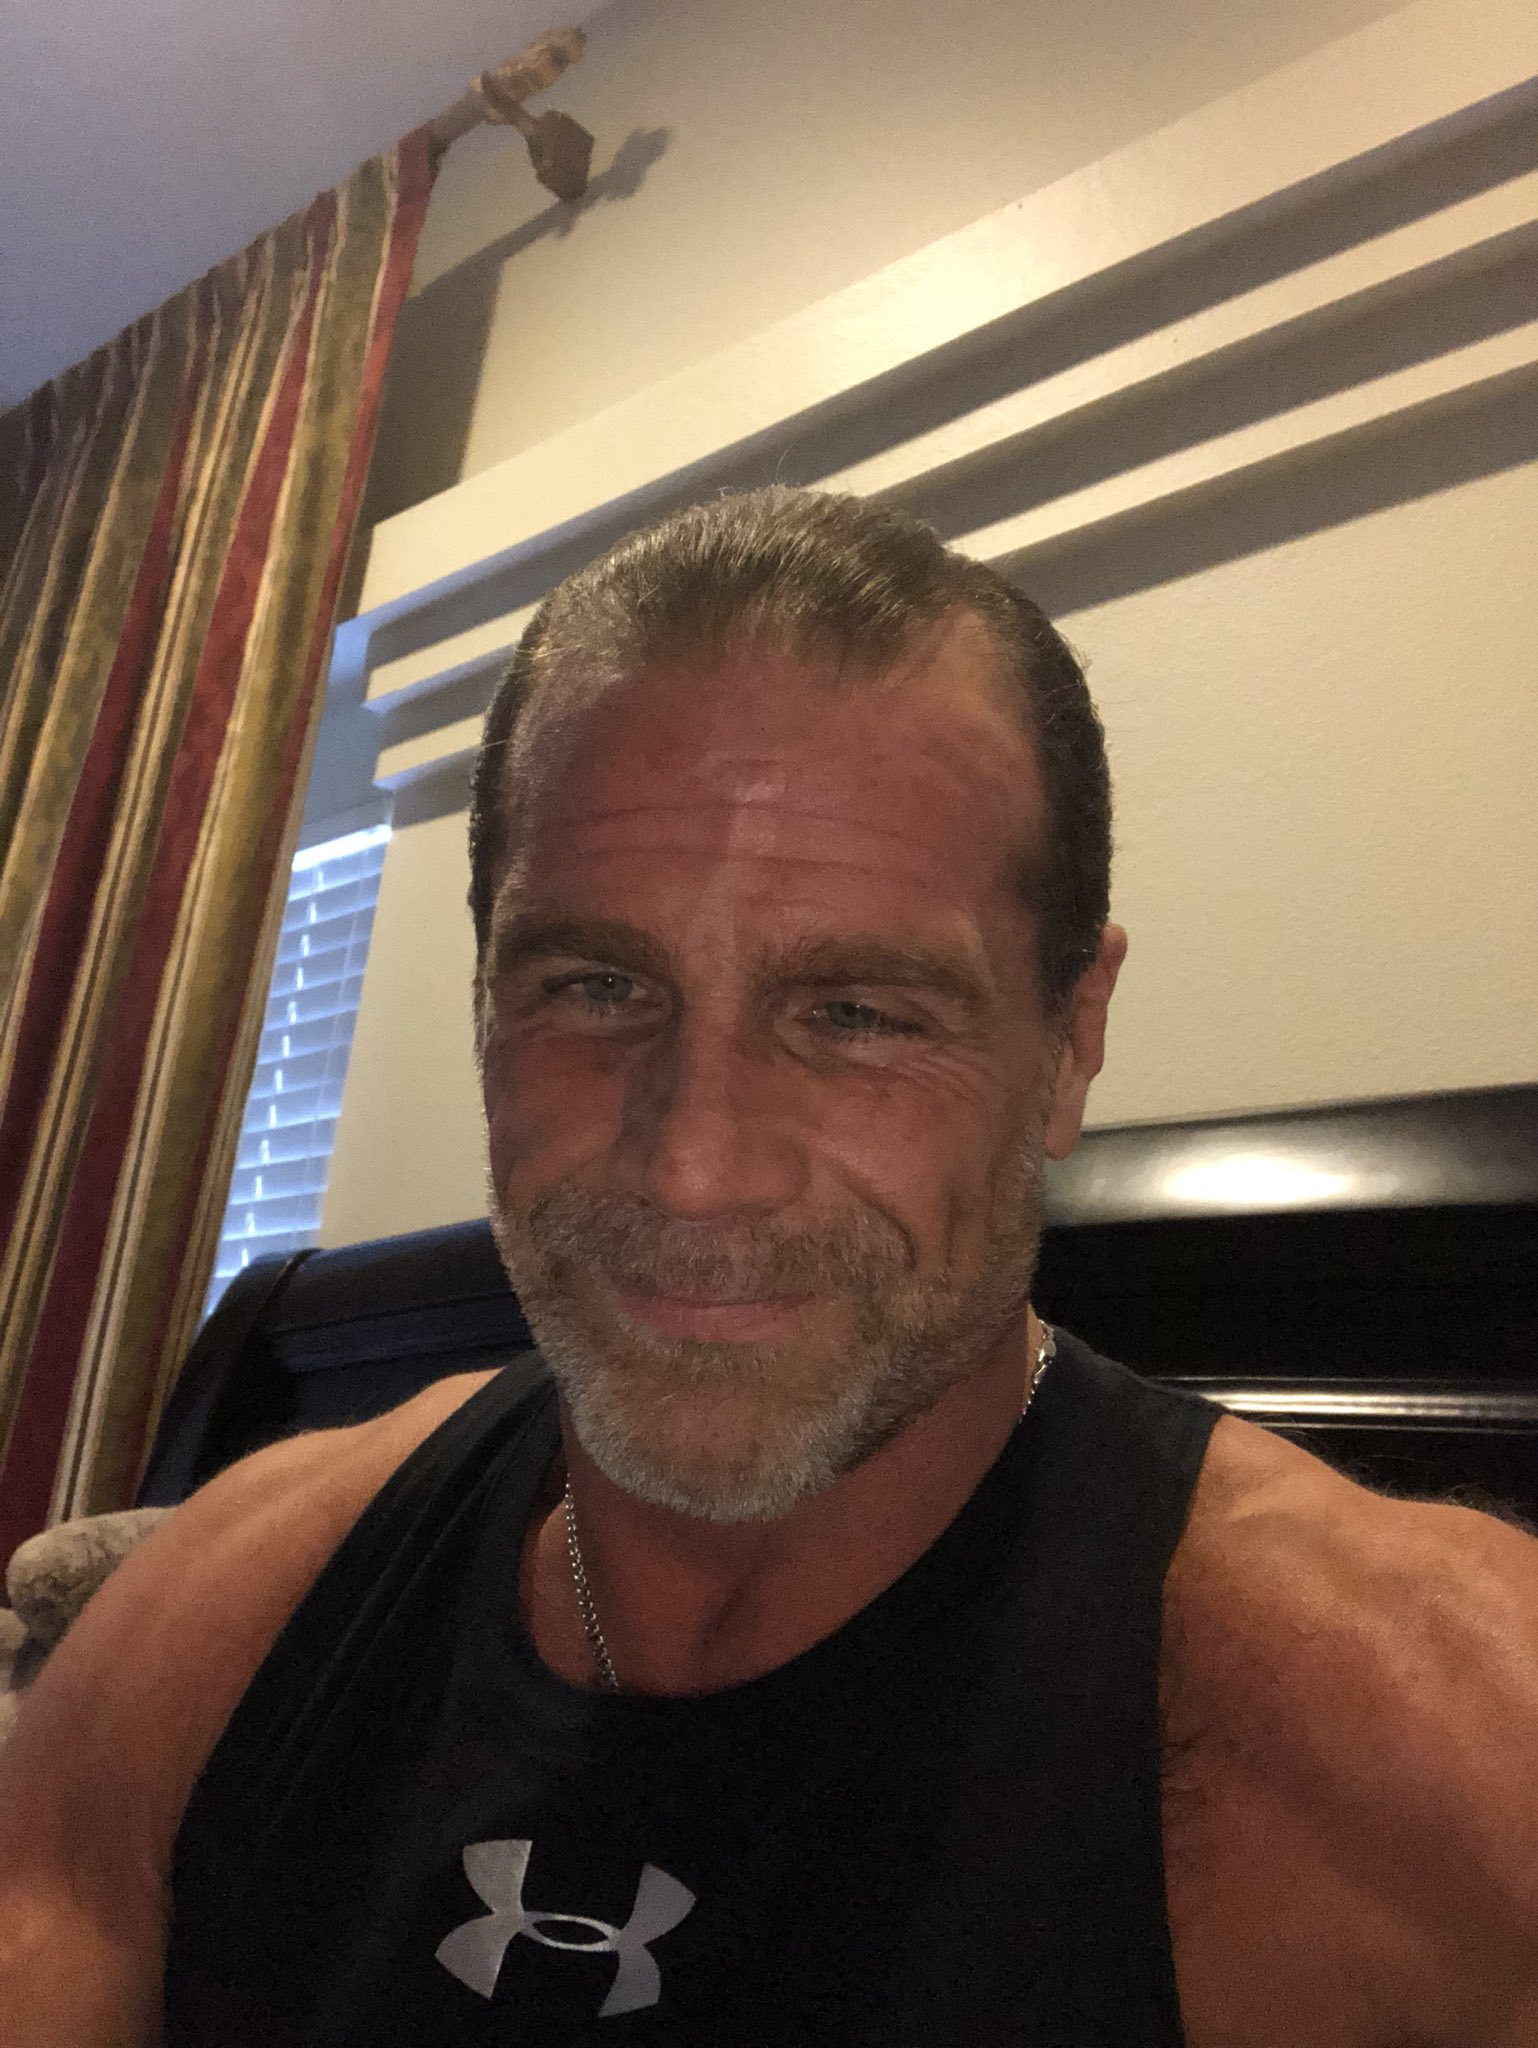 Shawn Michaels on Twitter Me very excited about